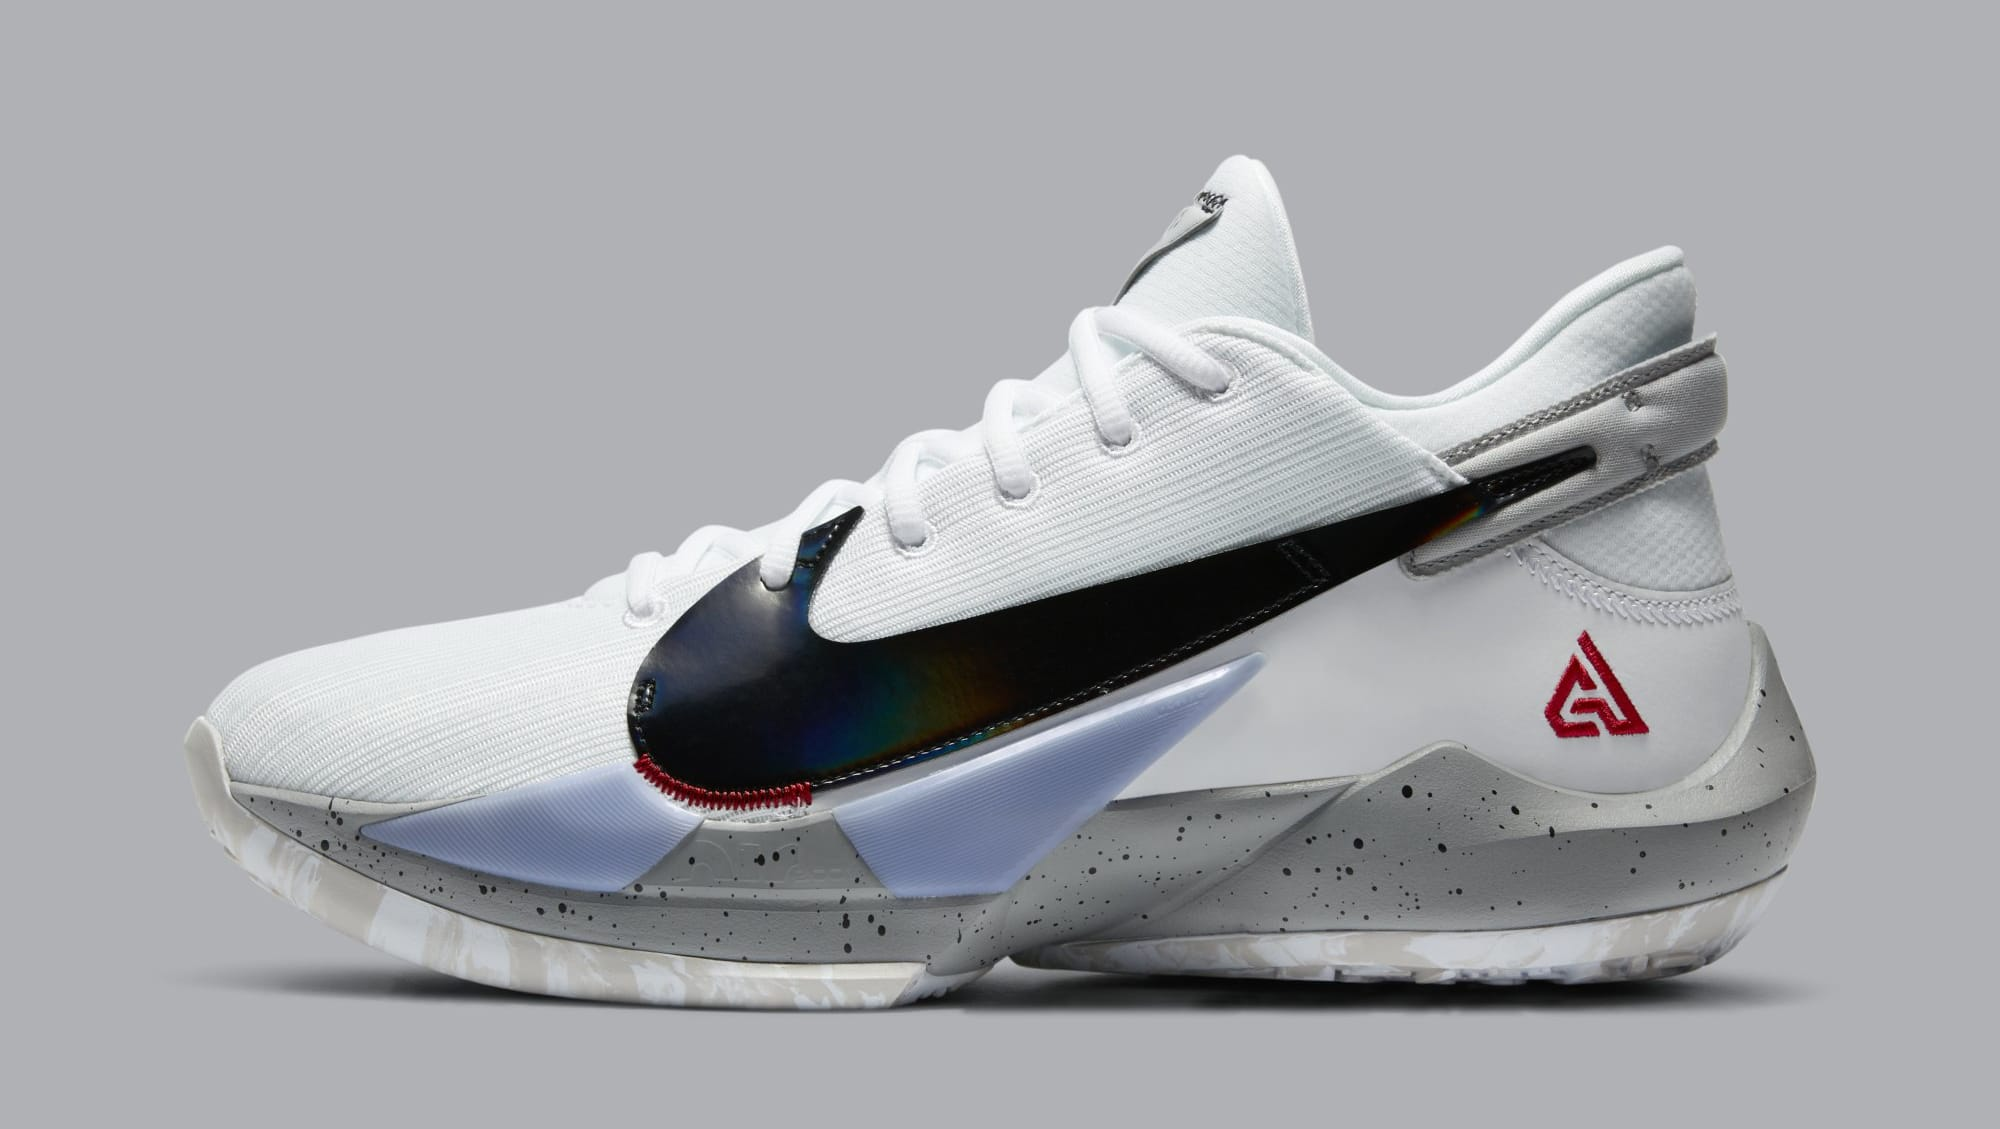 Nike Air Zoom Freak 2 'White/Cement' CK5825-100 (Lateral)